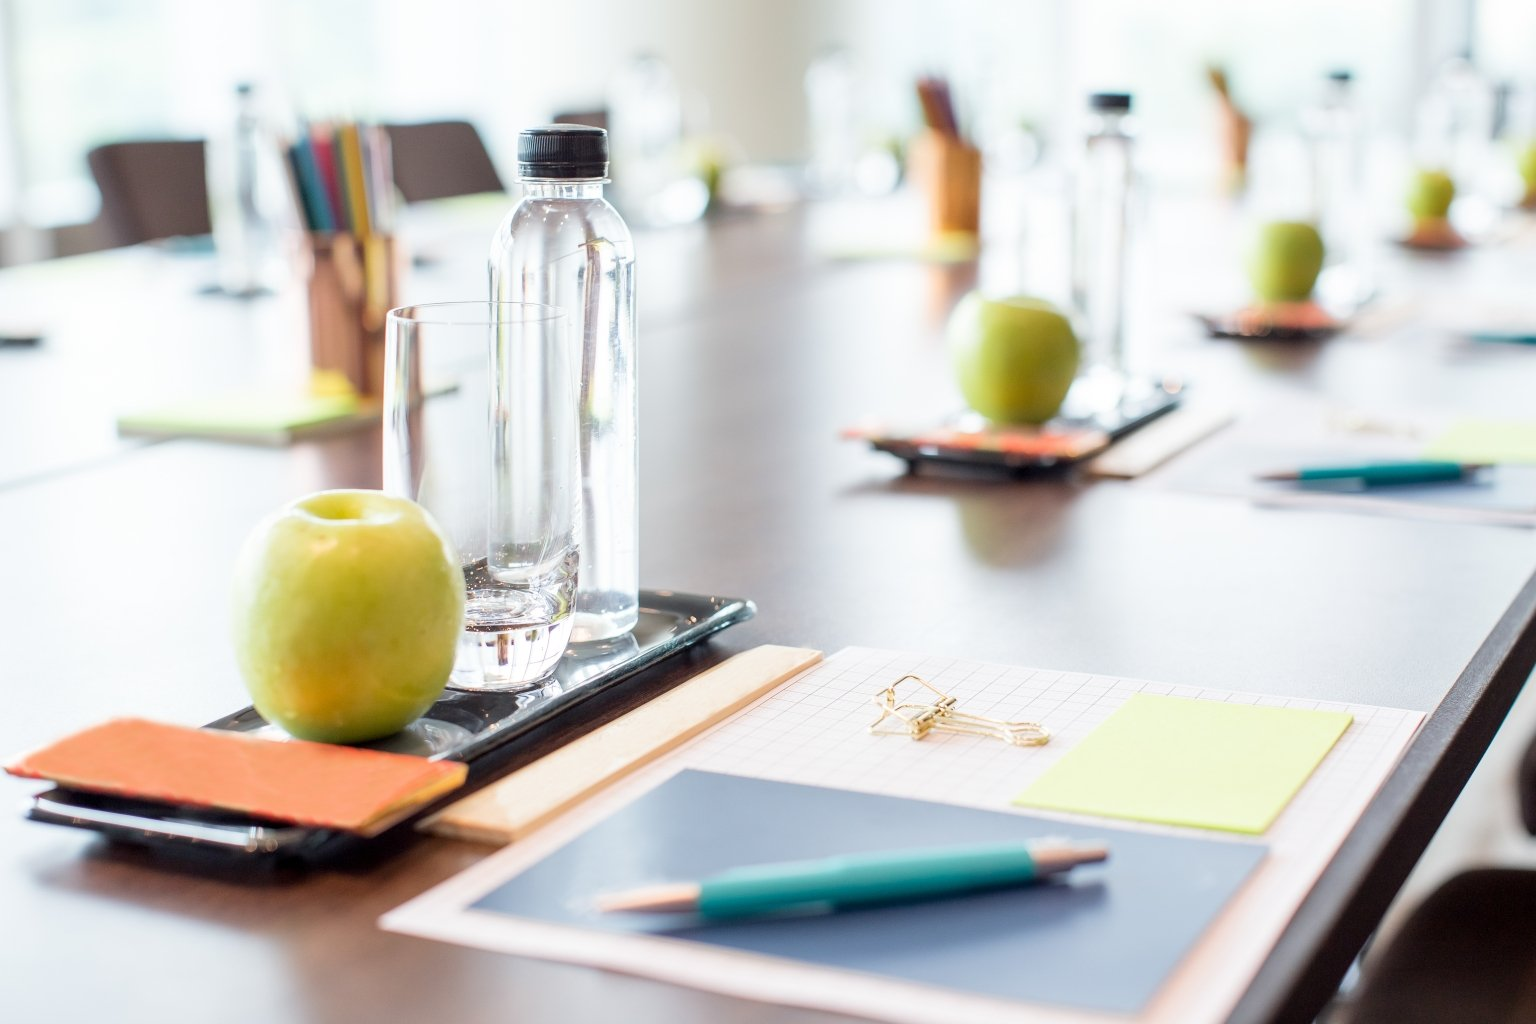 A table set for a business meeting with a pen, pad of paper, apple, and bottle of water